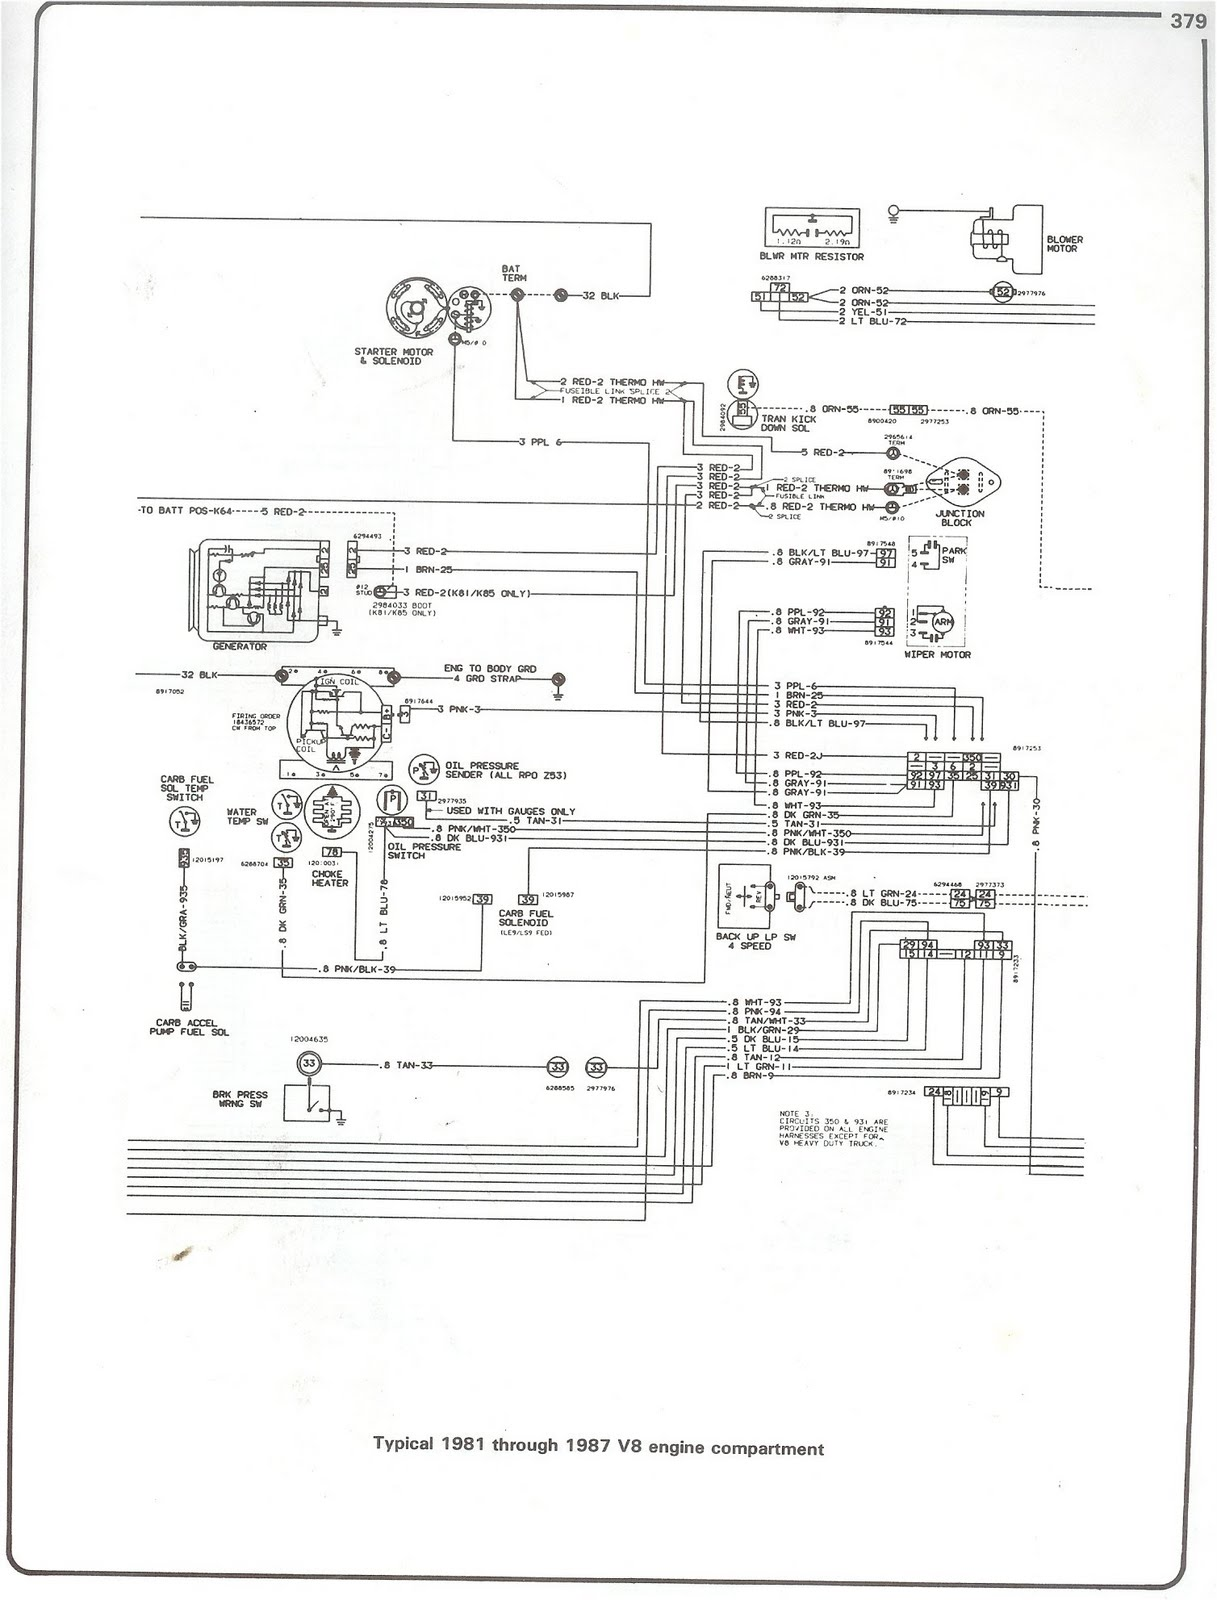 93 chevy truck heater wiring harness diagram free auto wiring diagram: 1981-1987 chevrolet v8 truck ...